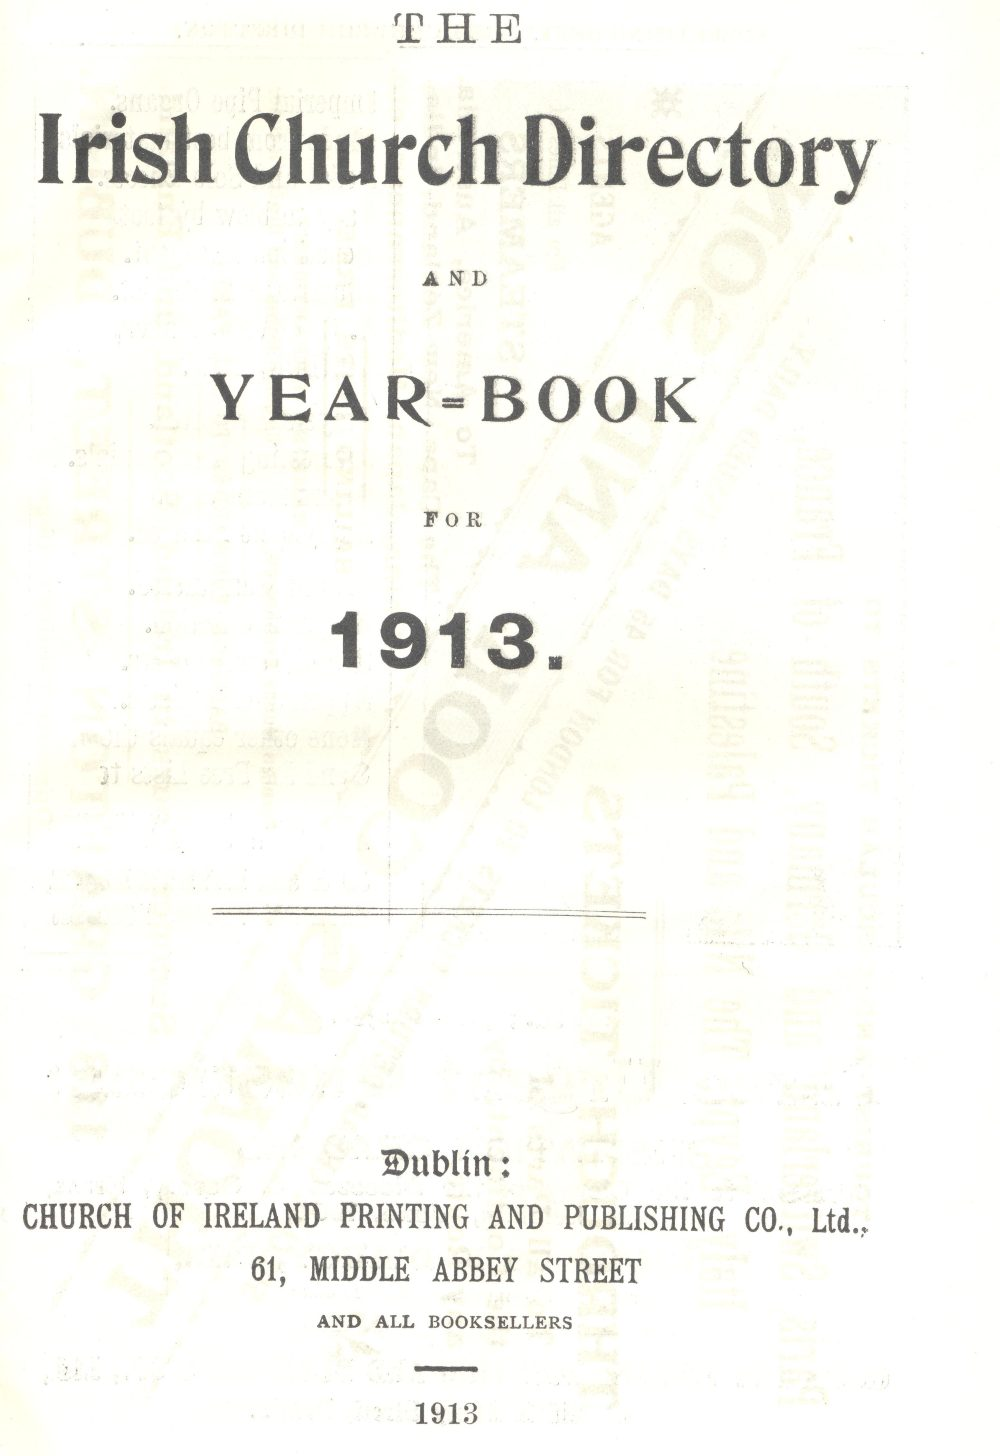 Title page of the Directory for 1913